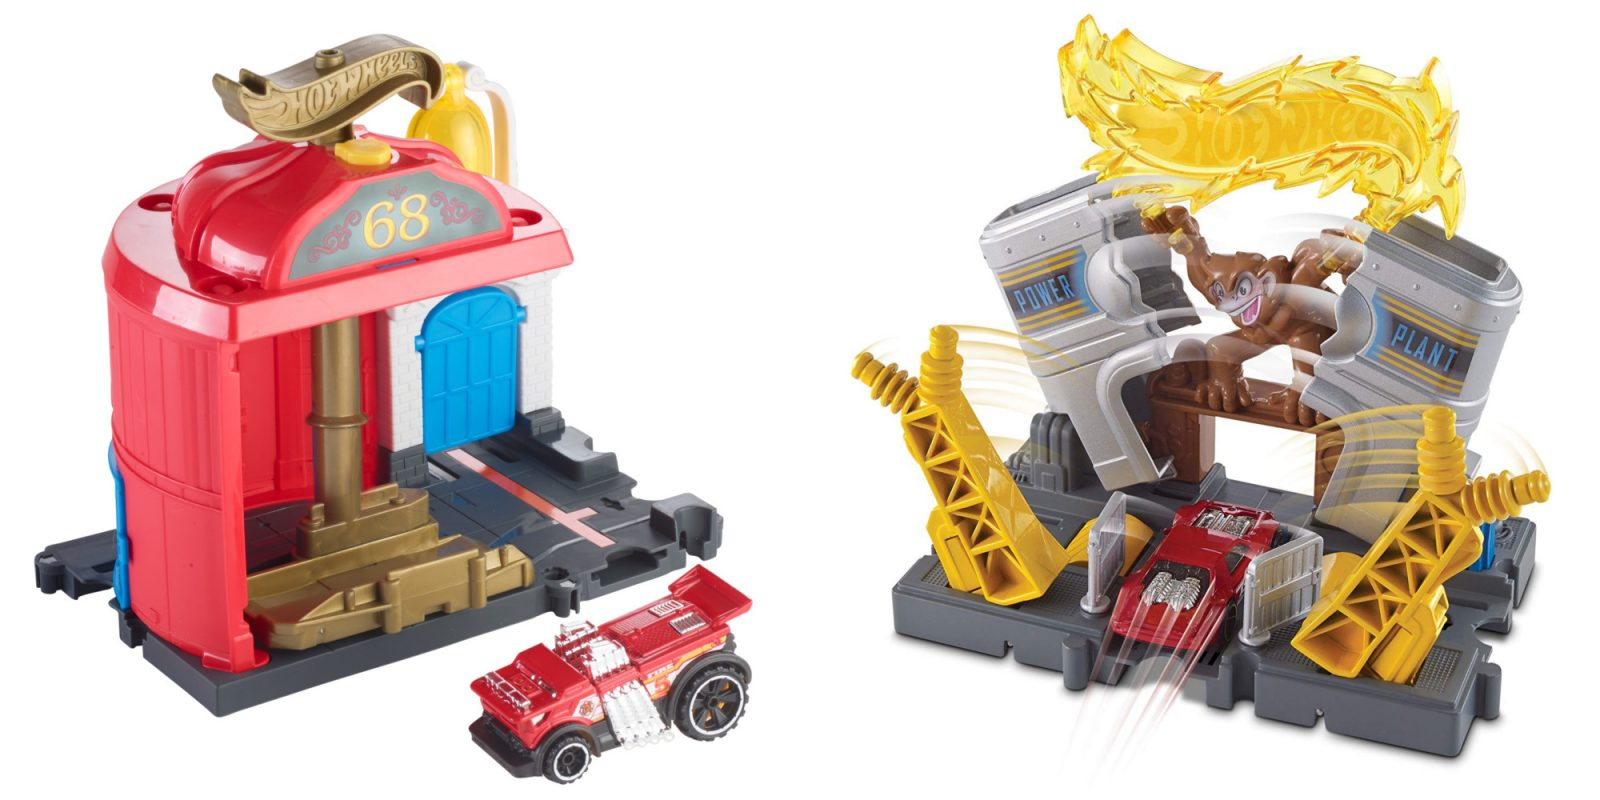 Hot Wheels Playsets from $4: Track Builder, Fire Station, more (Reg. $12+)